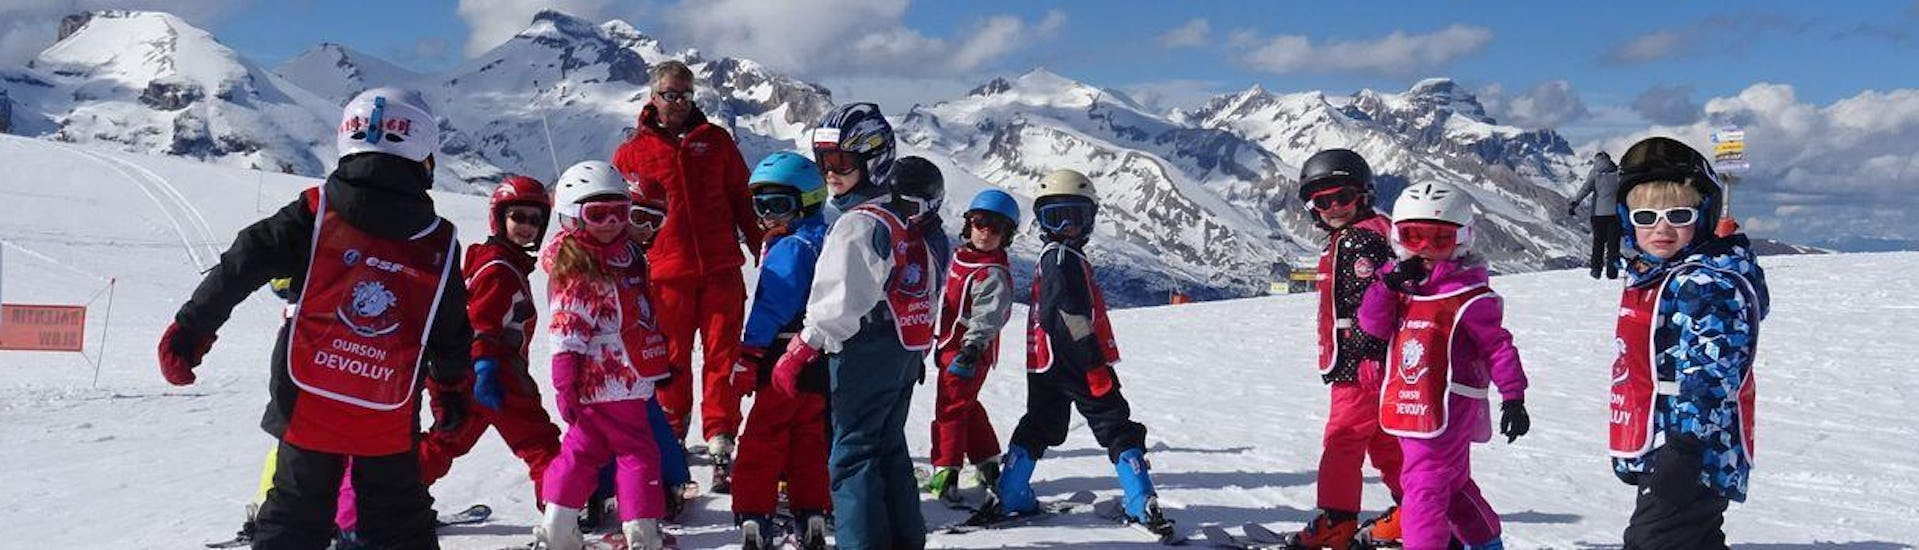 "Kids are standing at the top of the slopes ready to start their Kids Ski Lessons ""Ourson"" (5-12 years) - First Timer with the ski school ESF du Dévoluy."